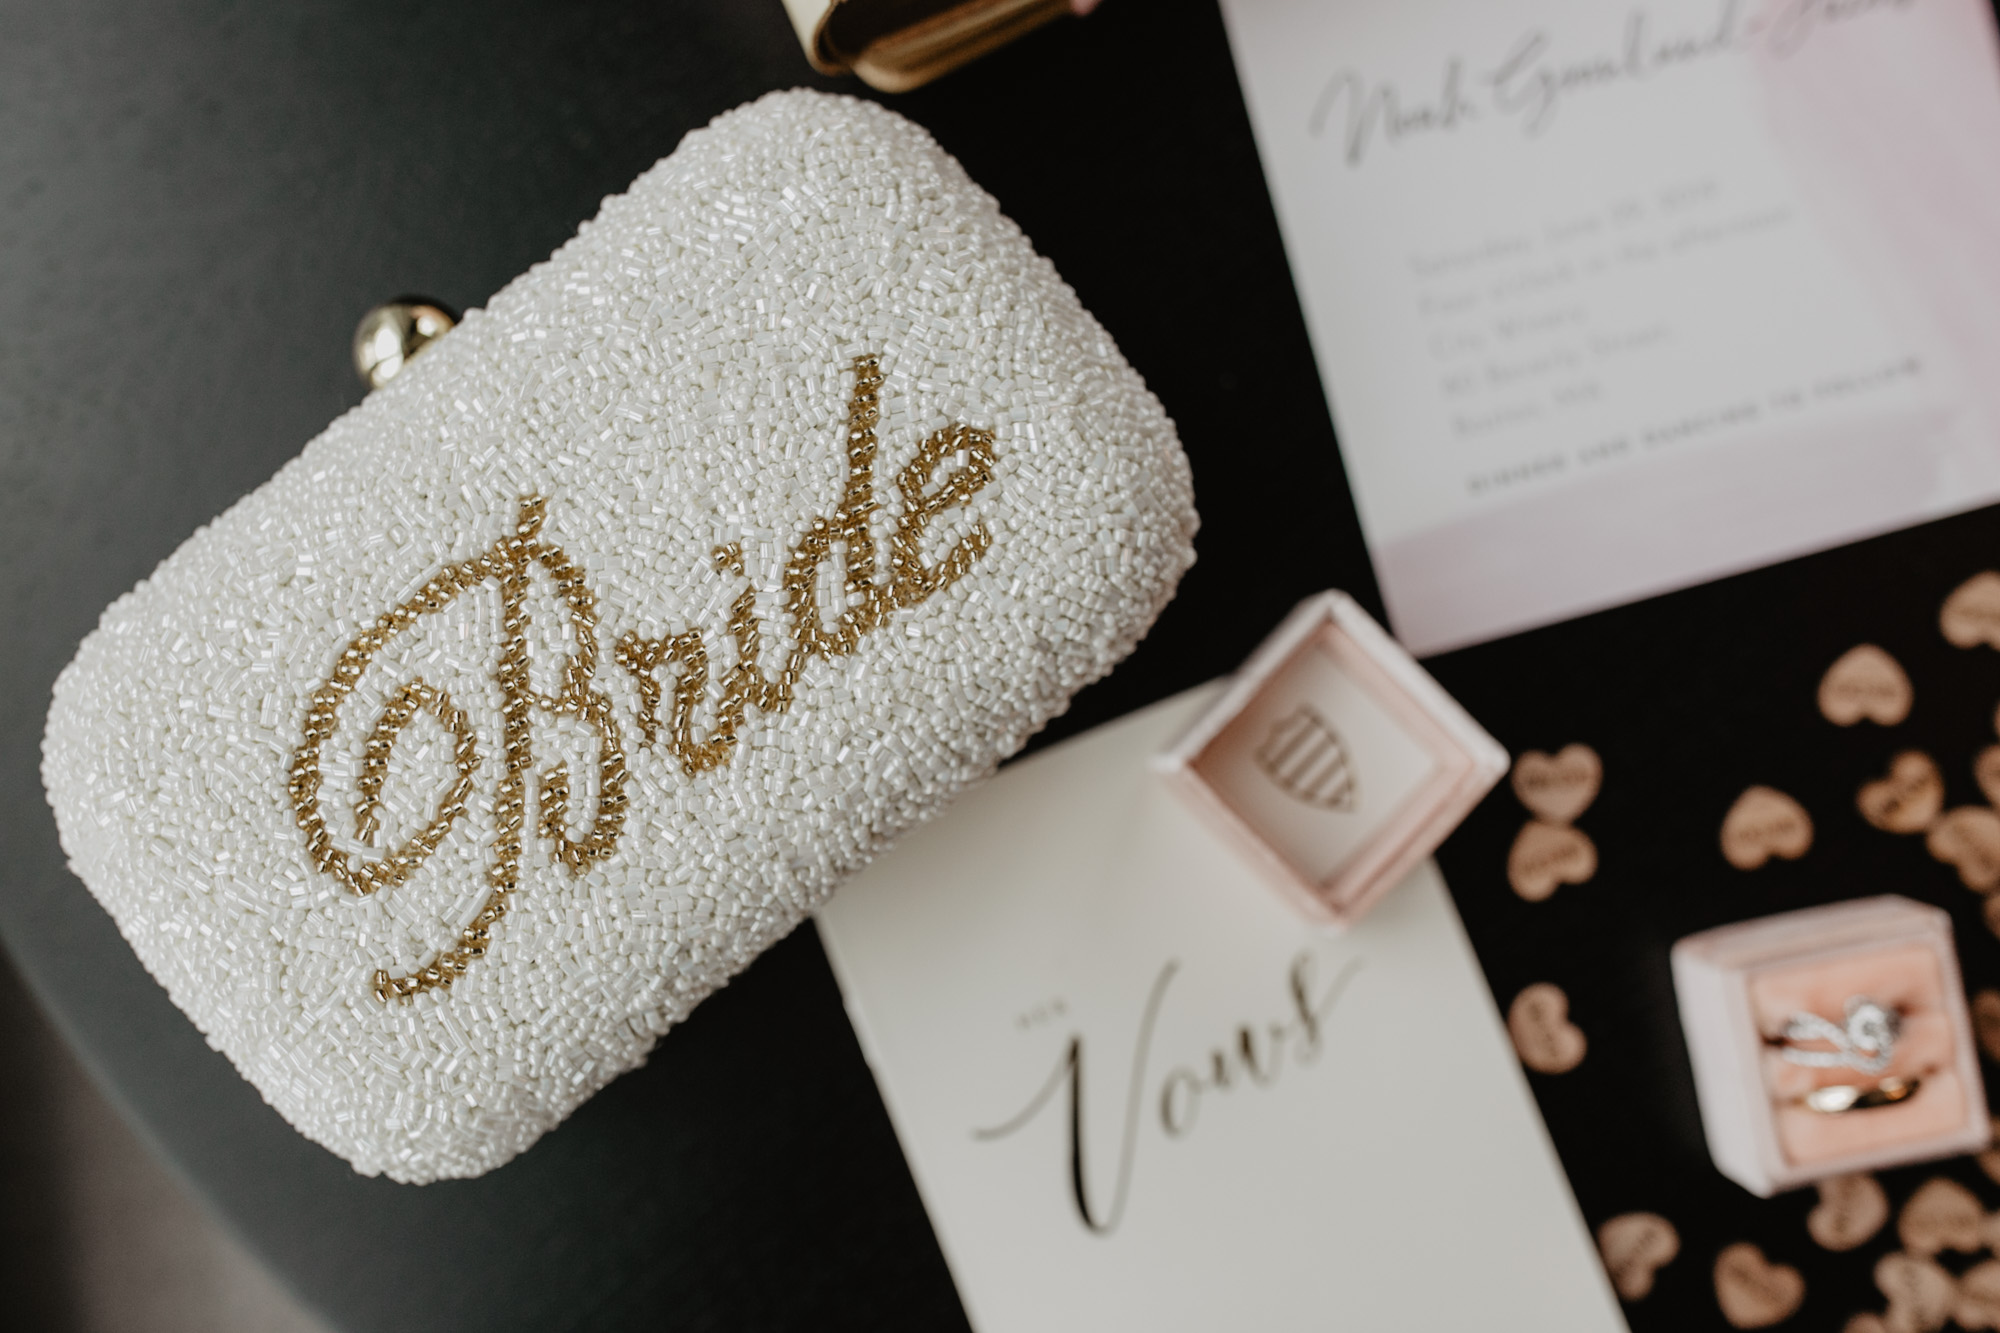 A bride's clutch on Boston hotel table